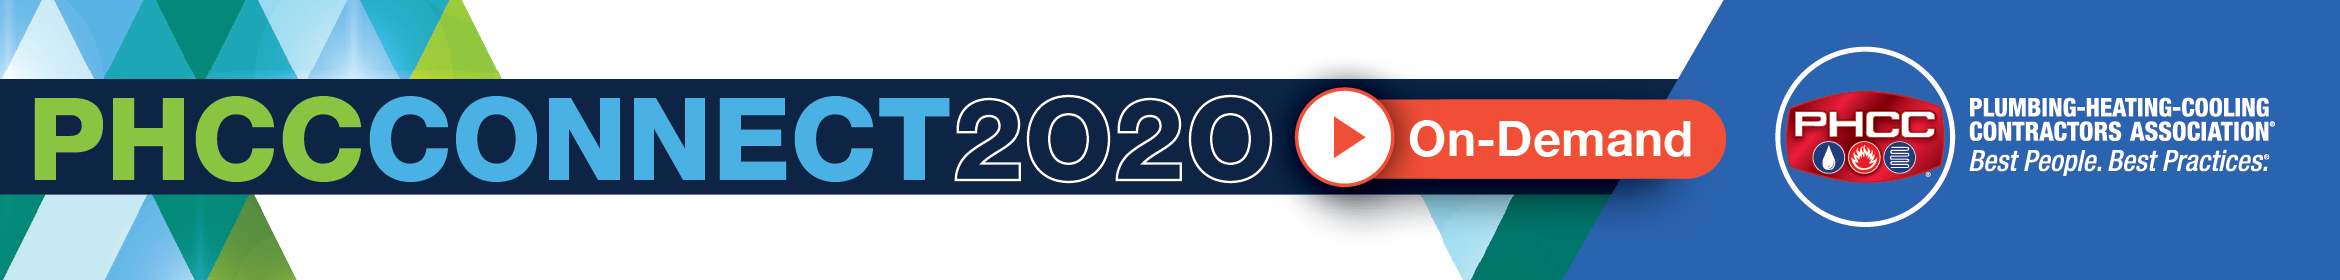 PHCC CONNECT 2020 Main banner